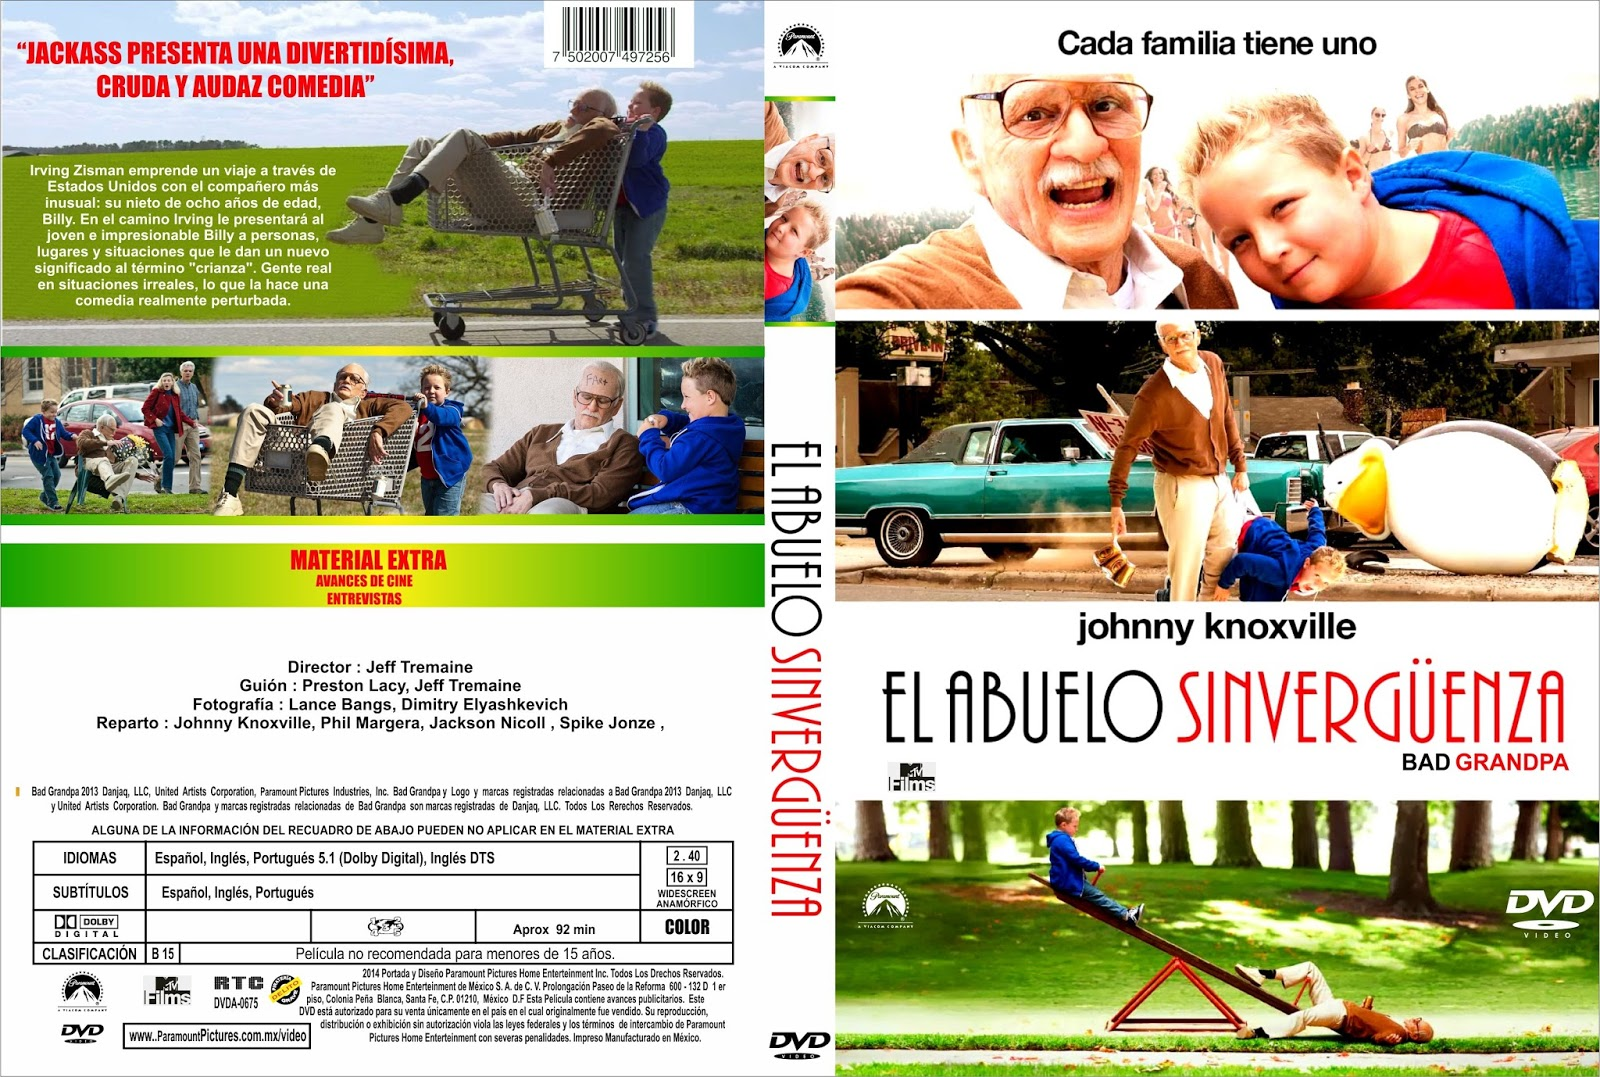 BAD GRANDPA - DVD COVER 2013Bad Grandpa Dvd Cover